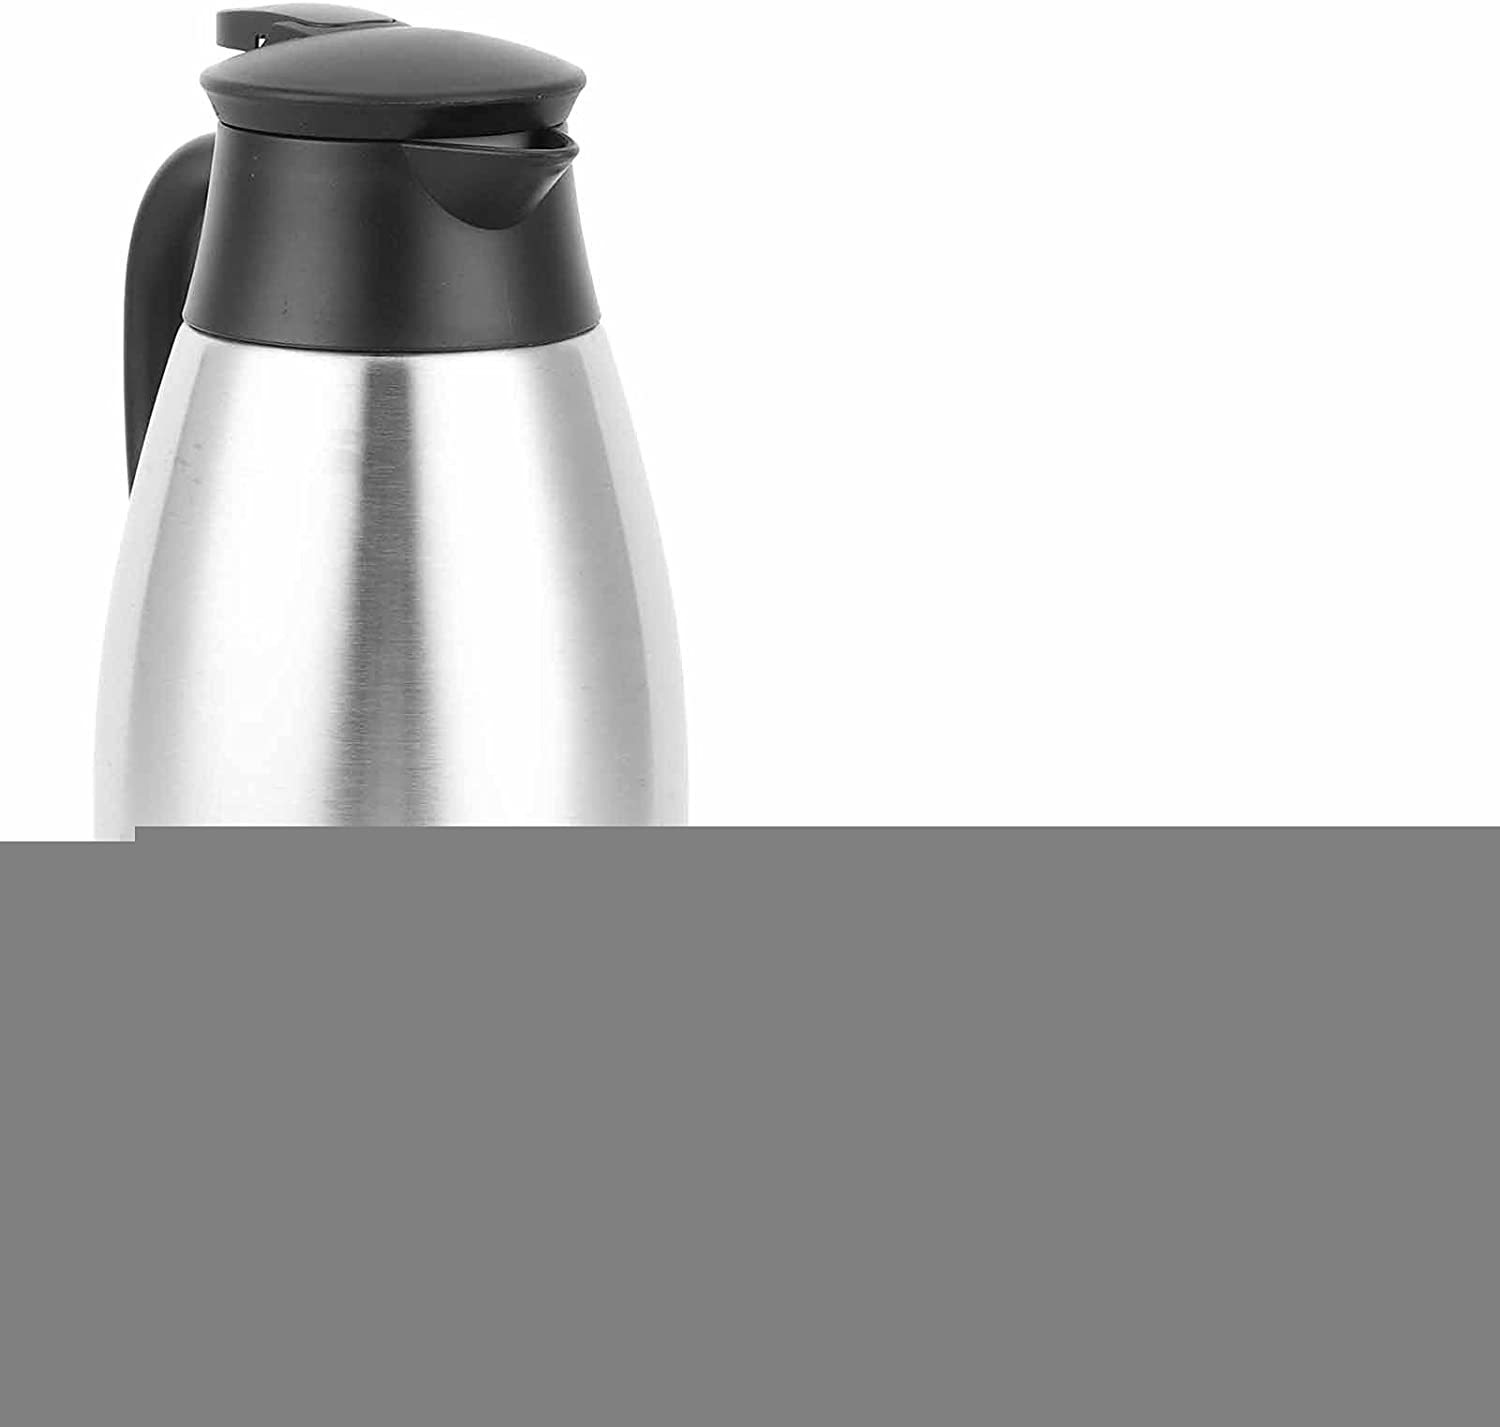 Water Kettle Good Latest item Sealing Portable 2L Attention brand Stainless Pot 304 S